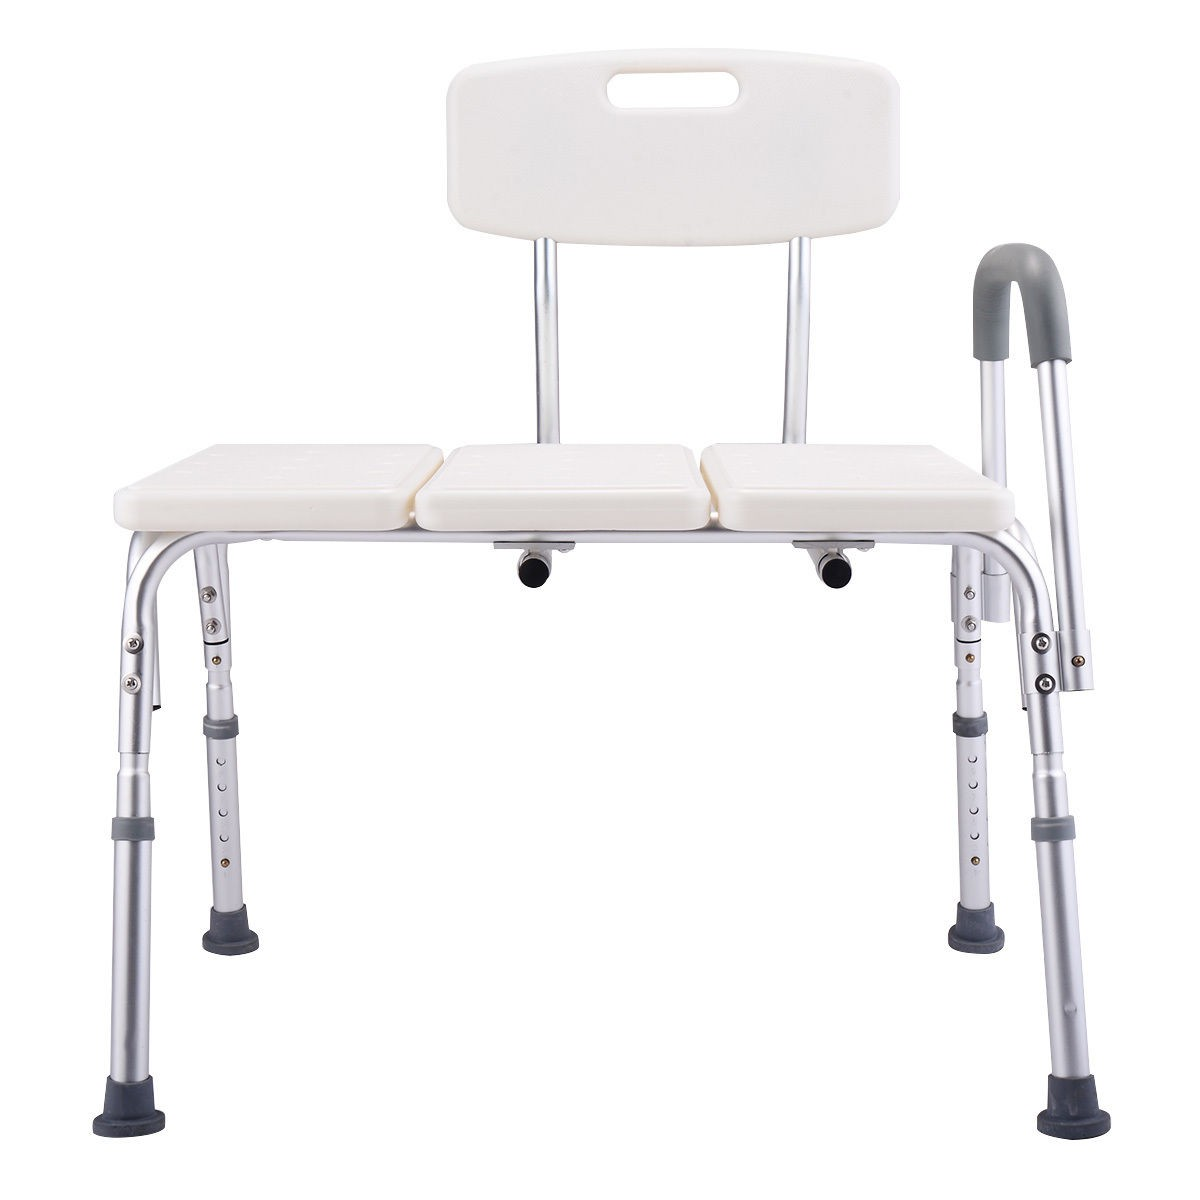 10 Height Adjustable Medical Shower Chair Bath Tub Bench Stool Seat Back And Arm